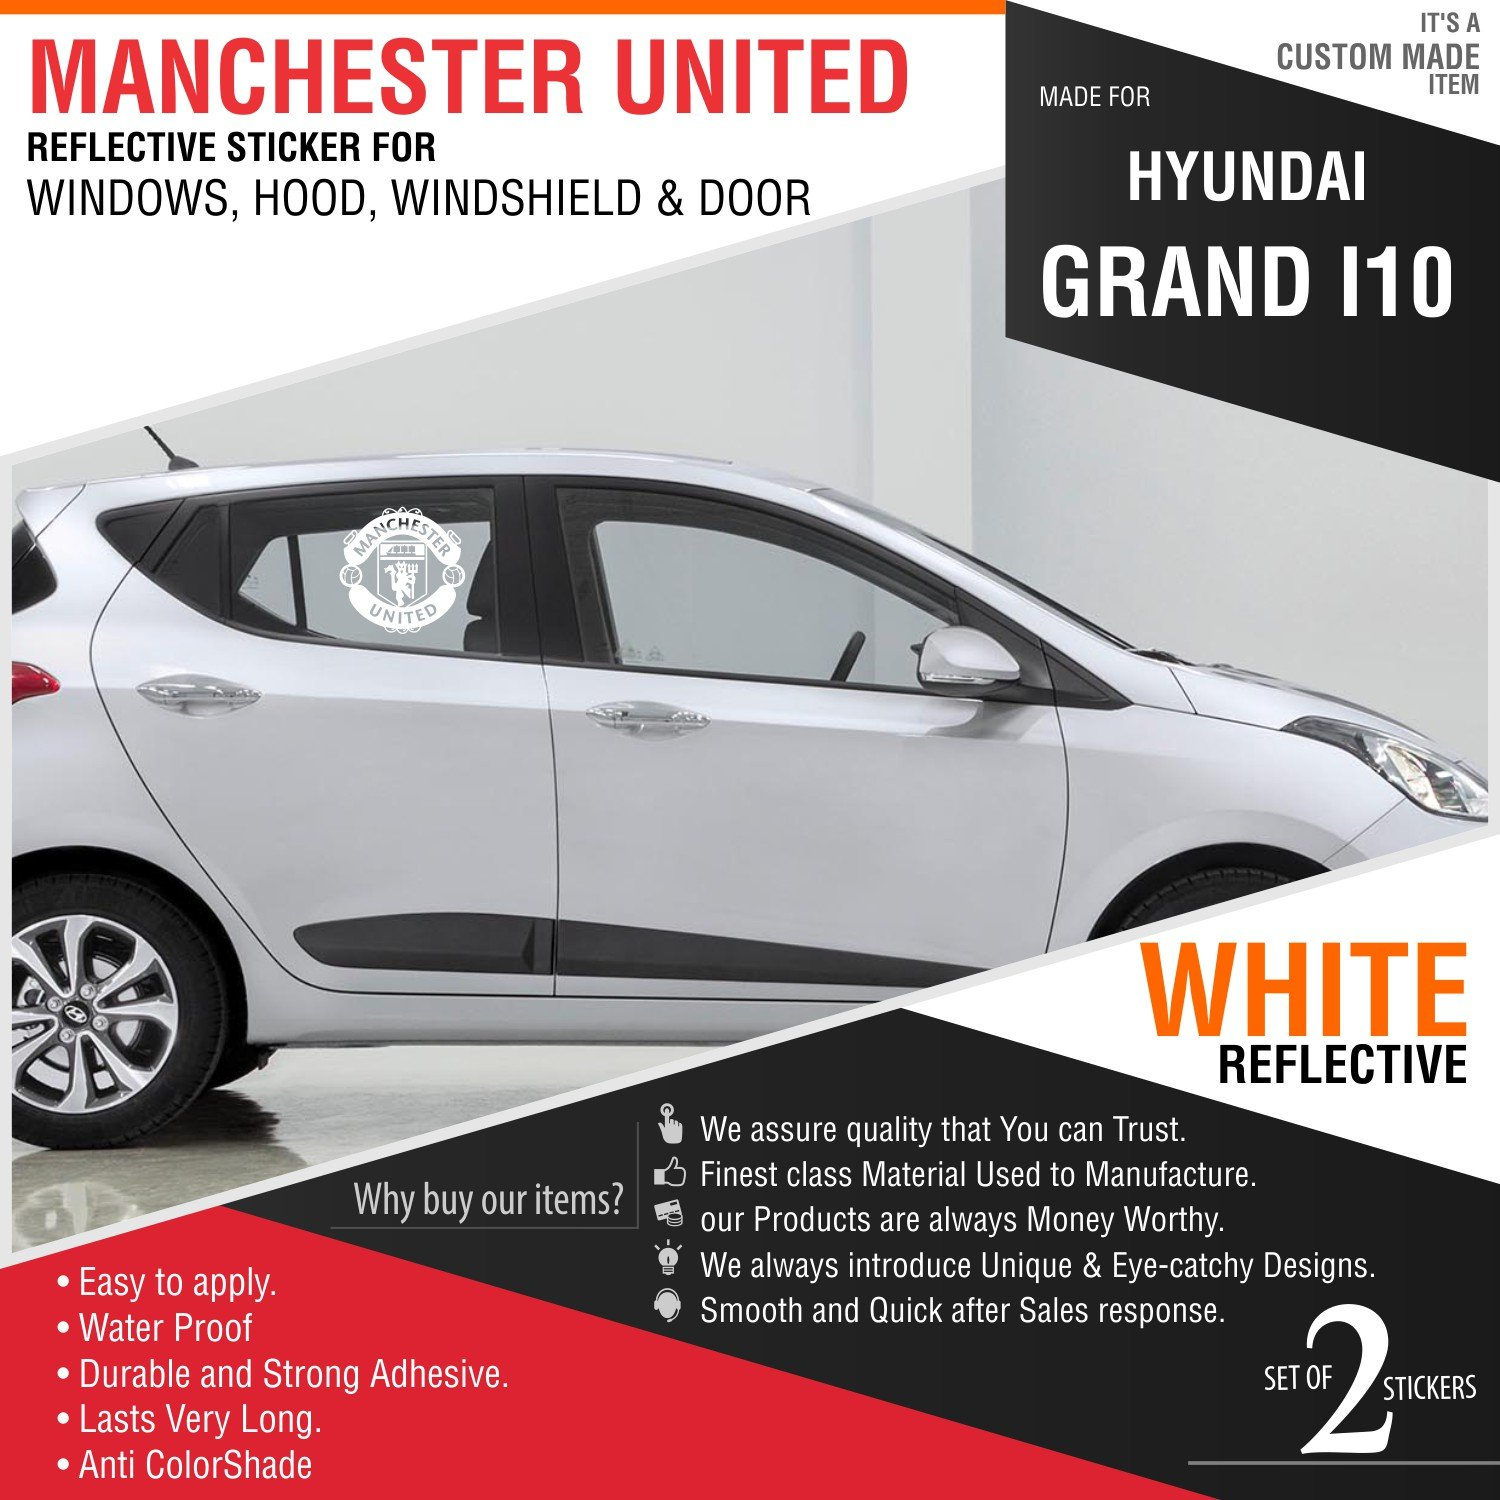 Carmetics generic manchester united sticker decal for hyundai grand i10 amazon in car motorbike